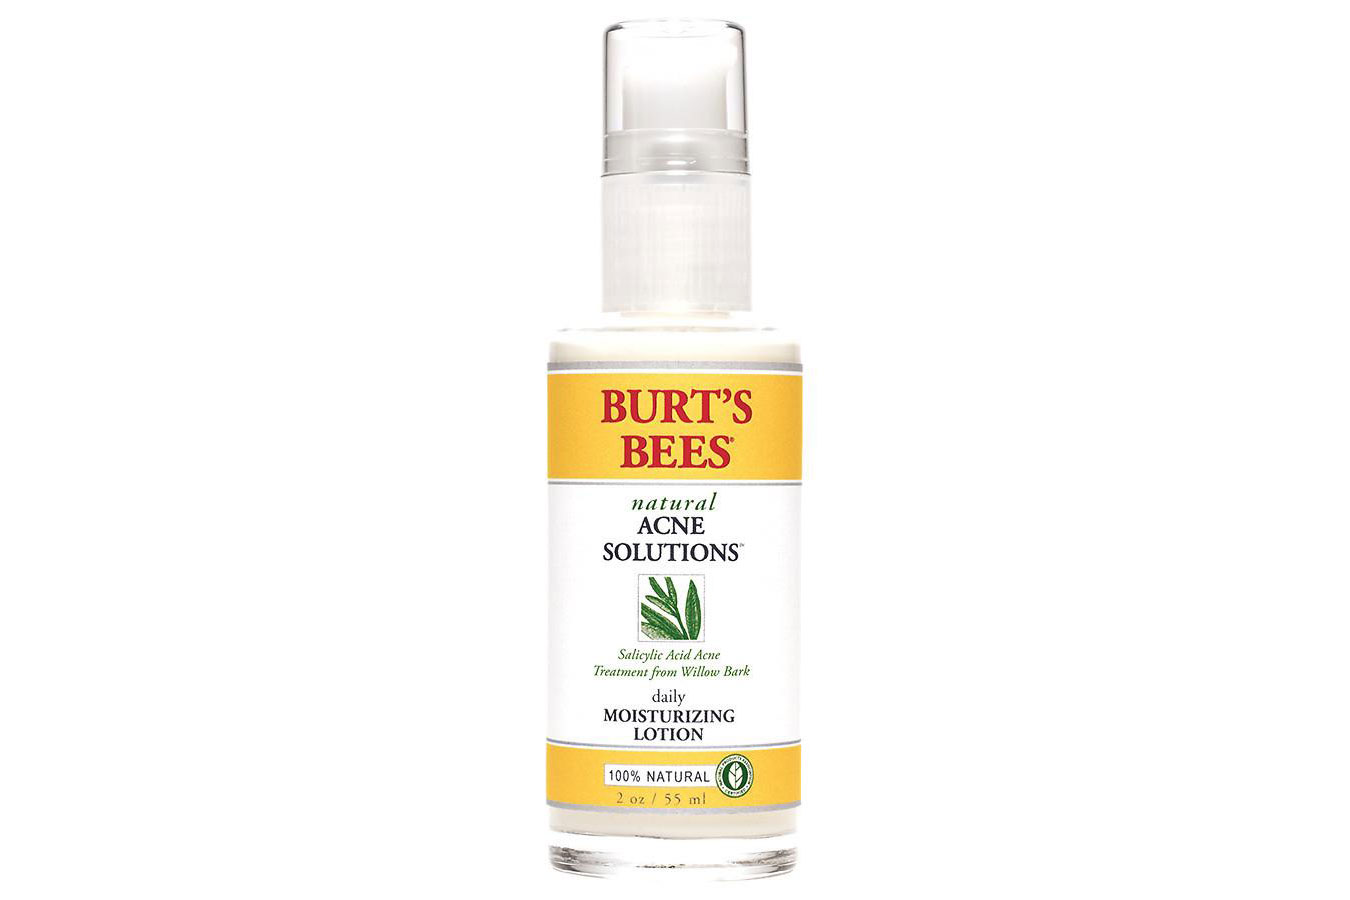 Burt's Bees Natural Acne Solutions Daily Moisturizing Lotion